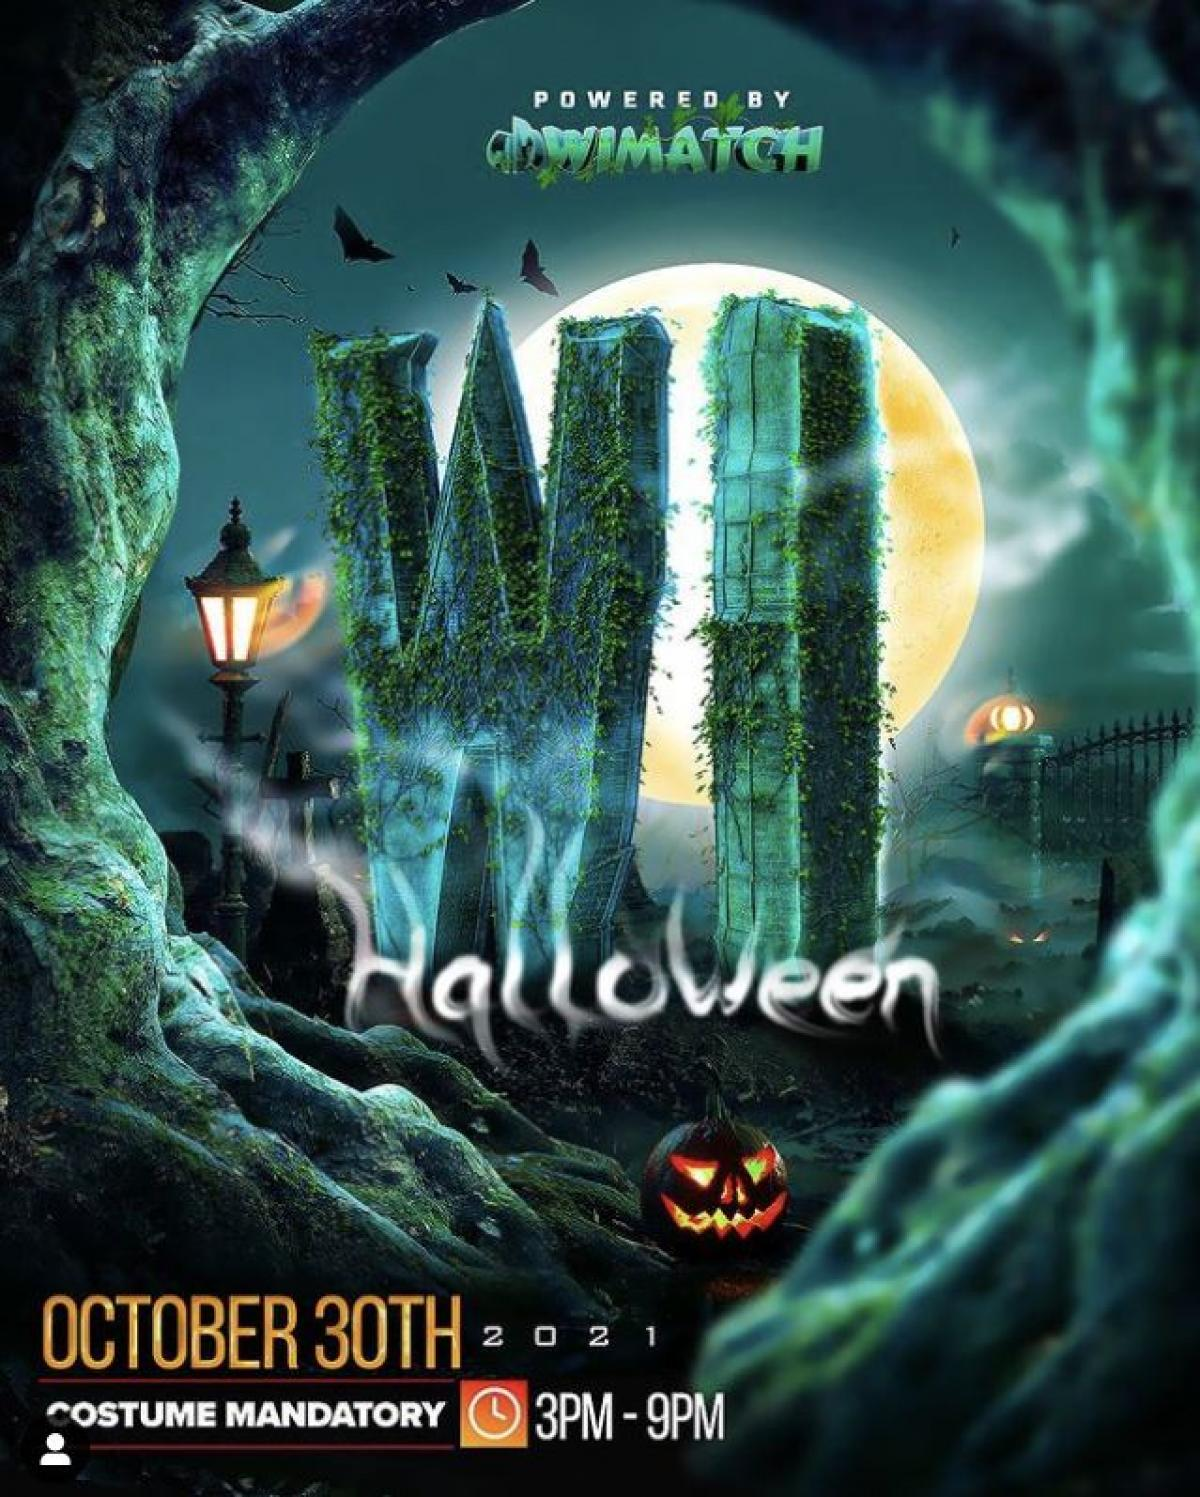 WiHalloween flyer or graphic.